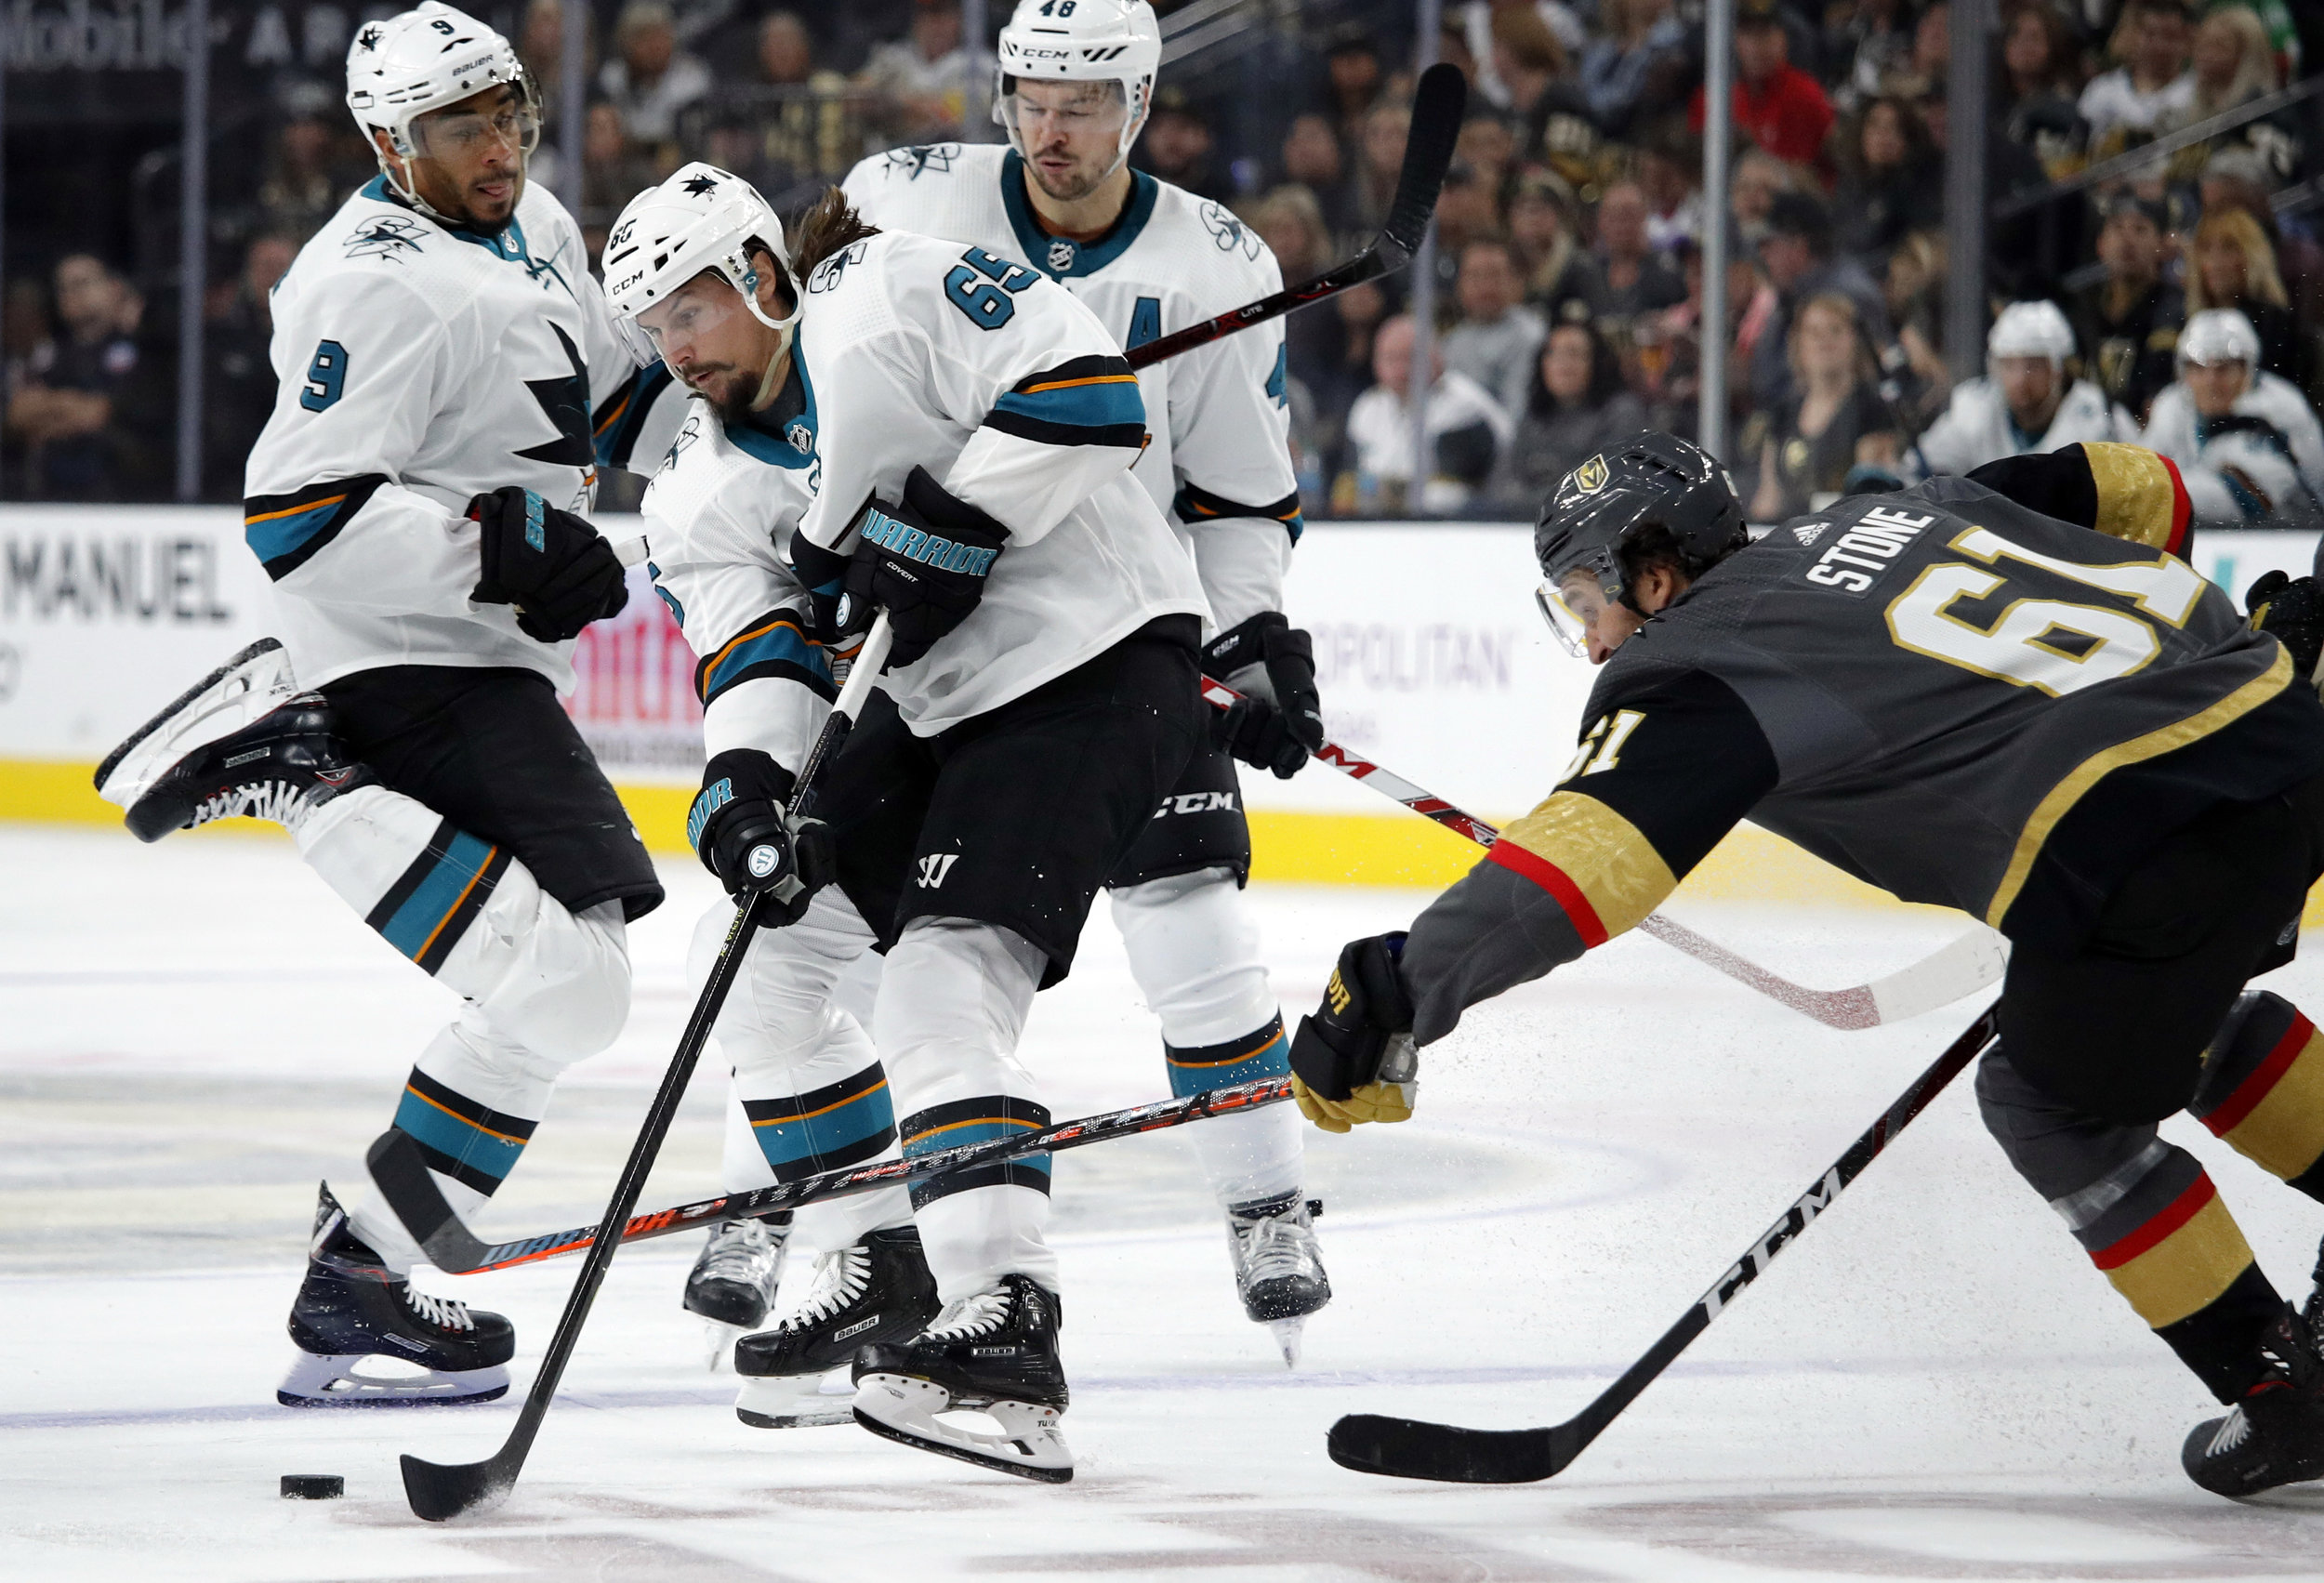 The San Jose Sharks continuously have high expectations entering the NHL and have continuously disappointed, leaving many to questions whether it is time to abandon the current plan.  Photo from The Associated Press.